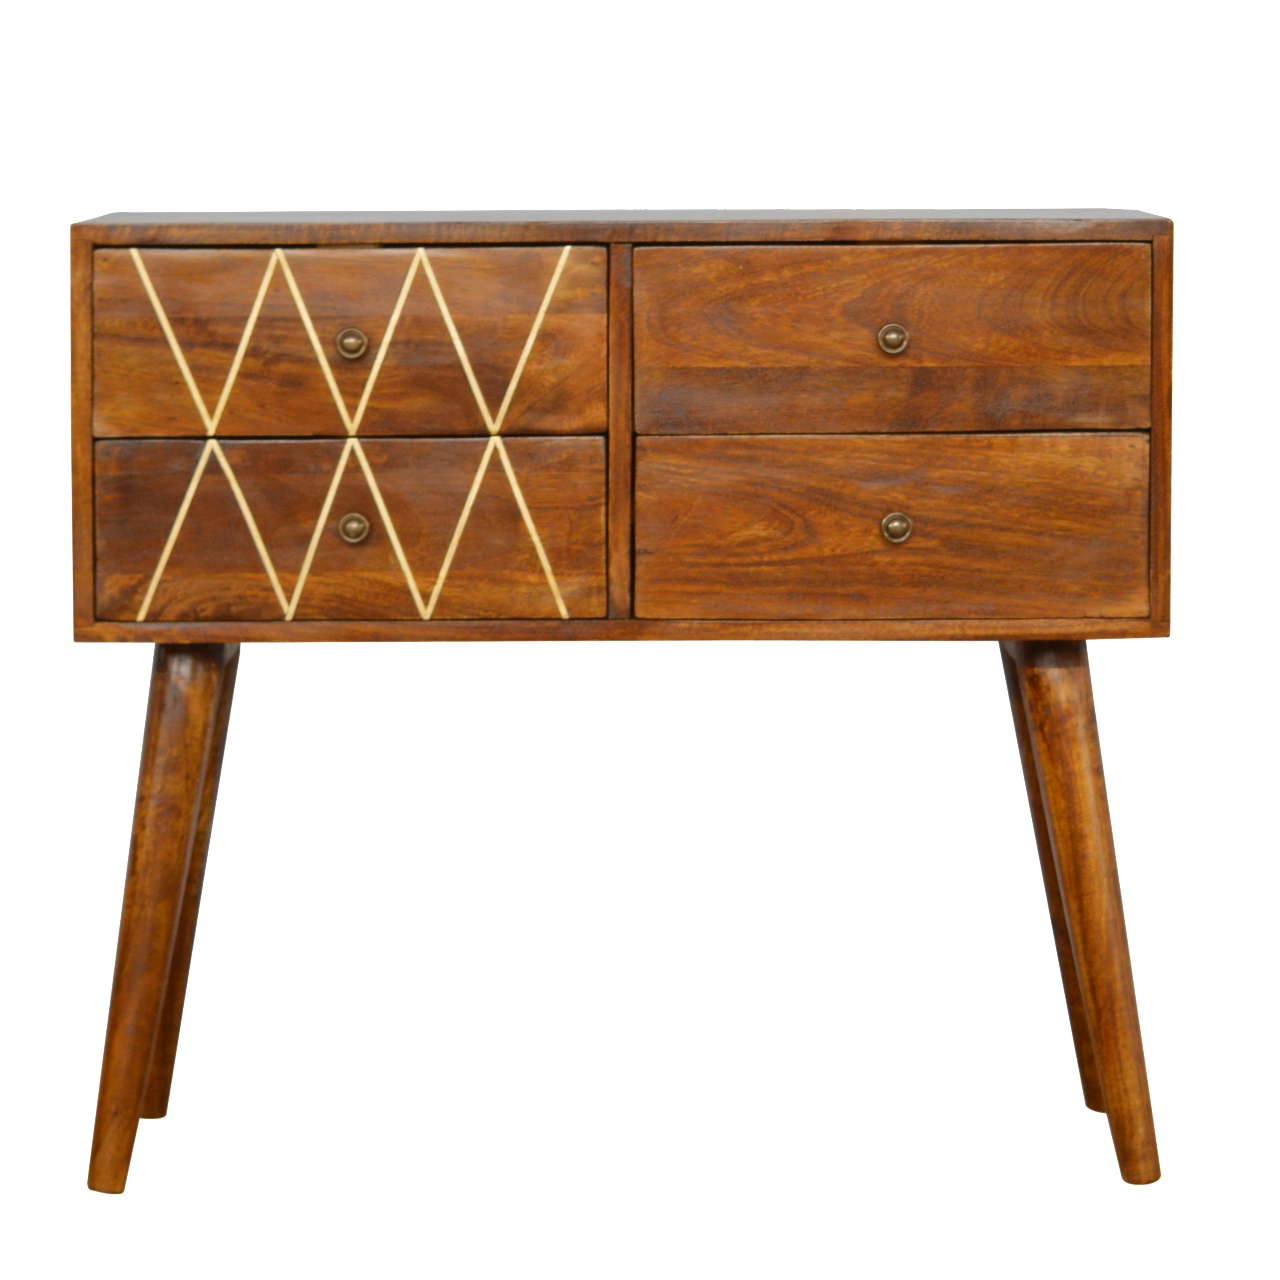 4 Drawer Nordic Style Console Table With Brass Inlay – Oh Me Oh My For Orange Inlay Console Tables (Gallery 3 of 20)